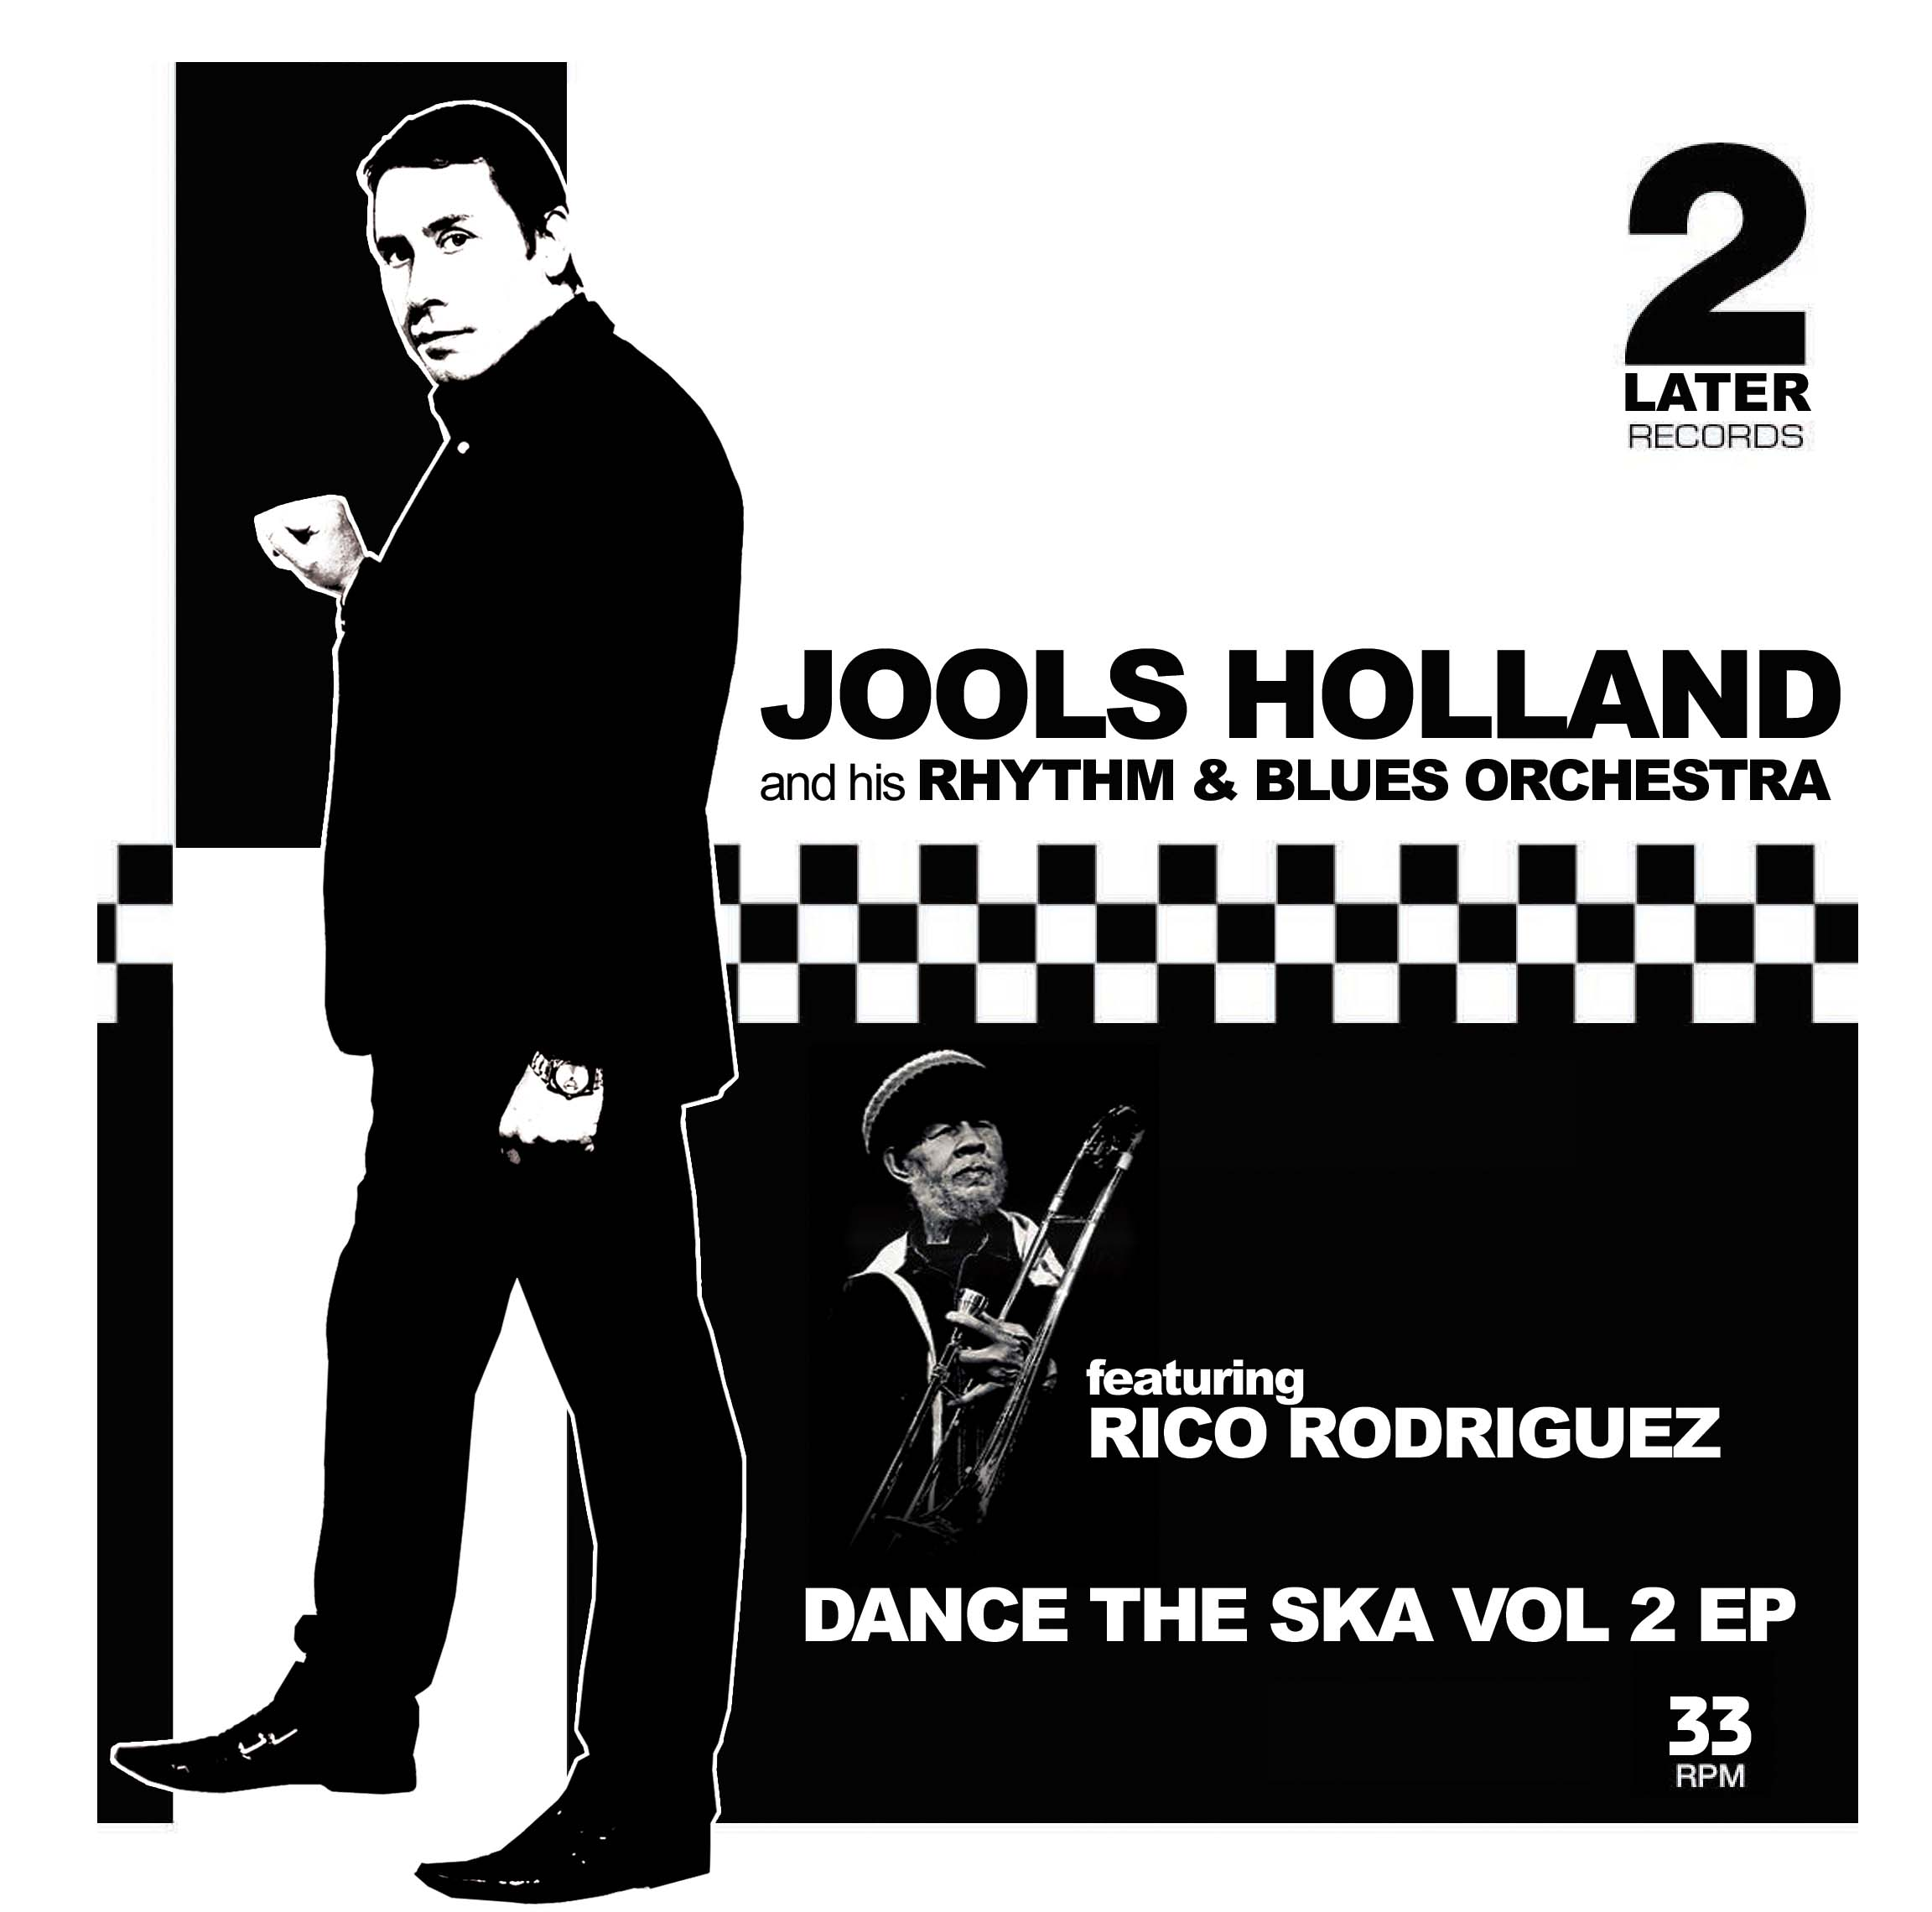 Jools Holland/DANCE THE SKA VOL 2 7""